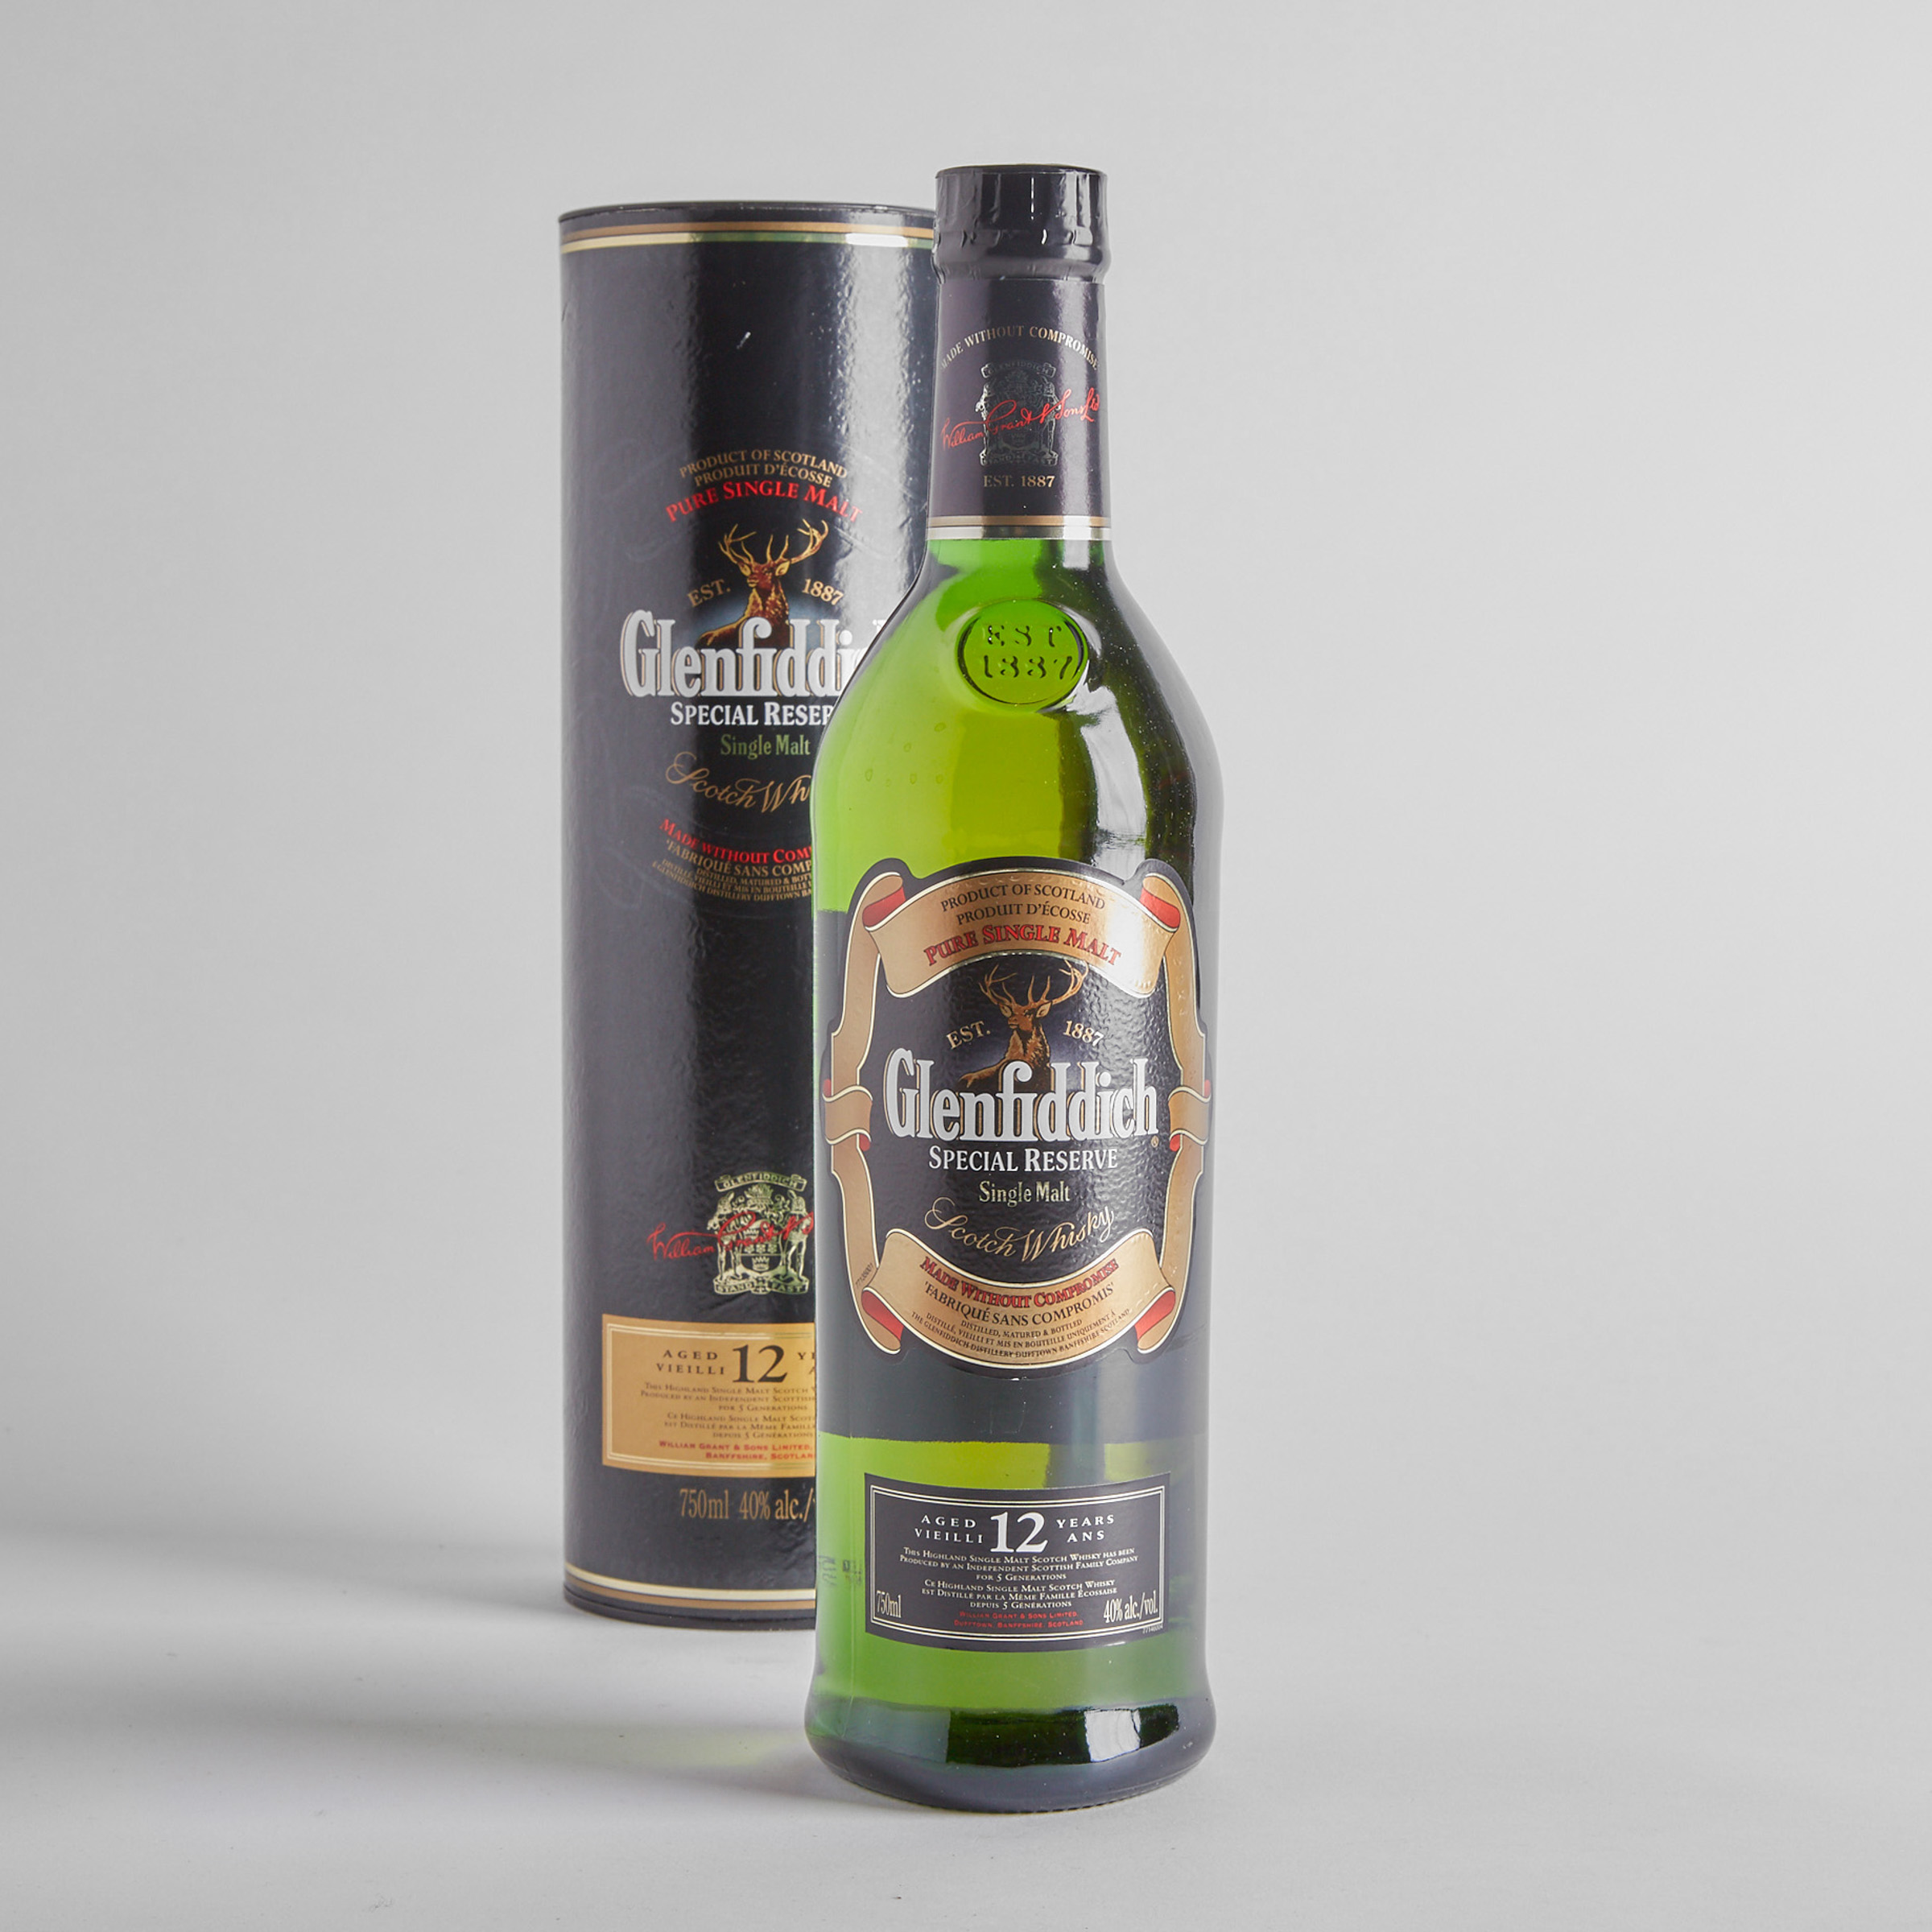 GLENFIDDICH SPECIAL RESERVE SINGLE MALT SCOTCH WHISKY 12 YEARS (ONE 750 ML)